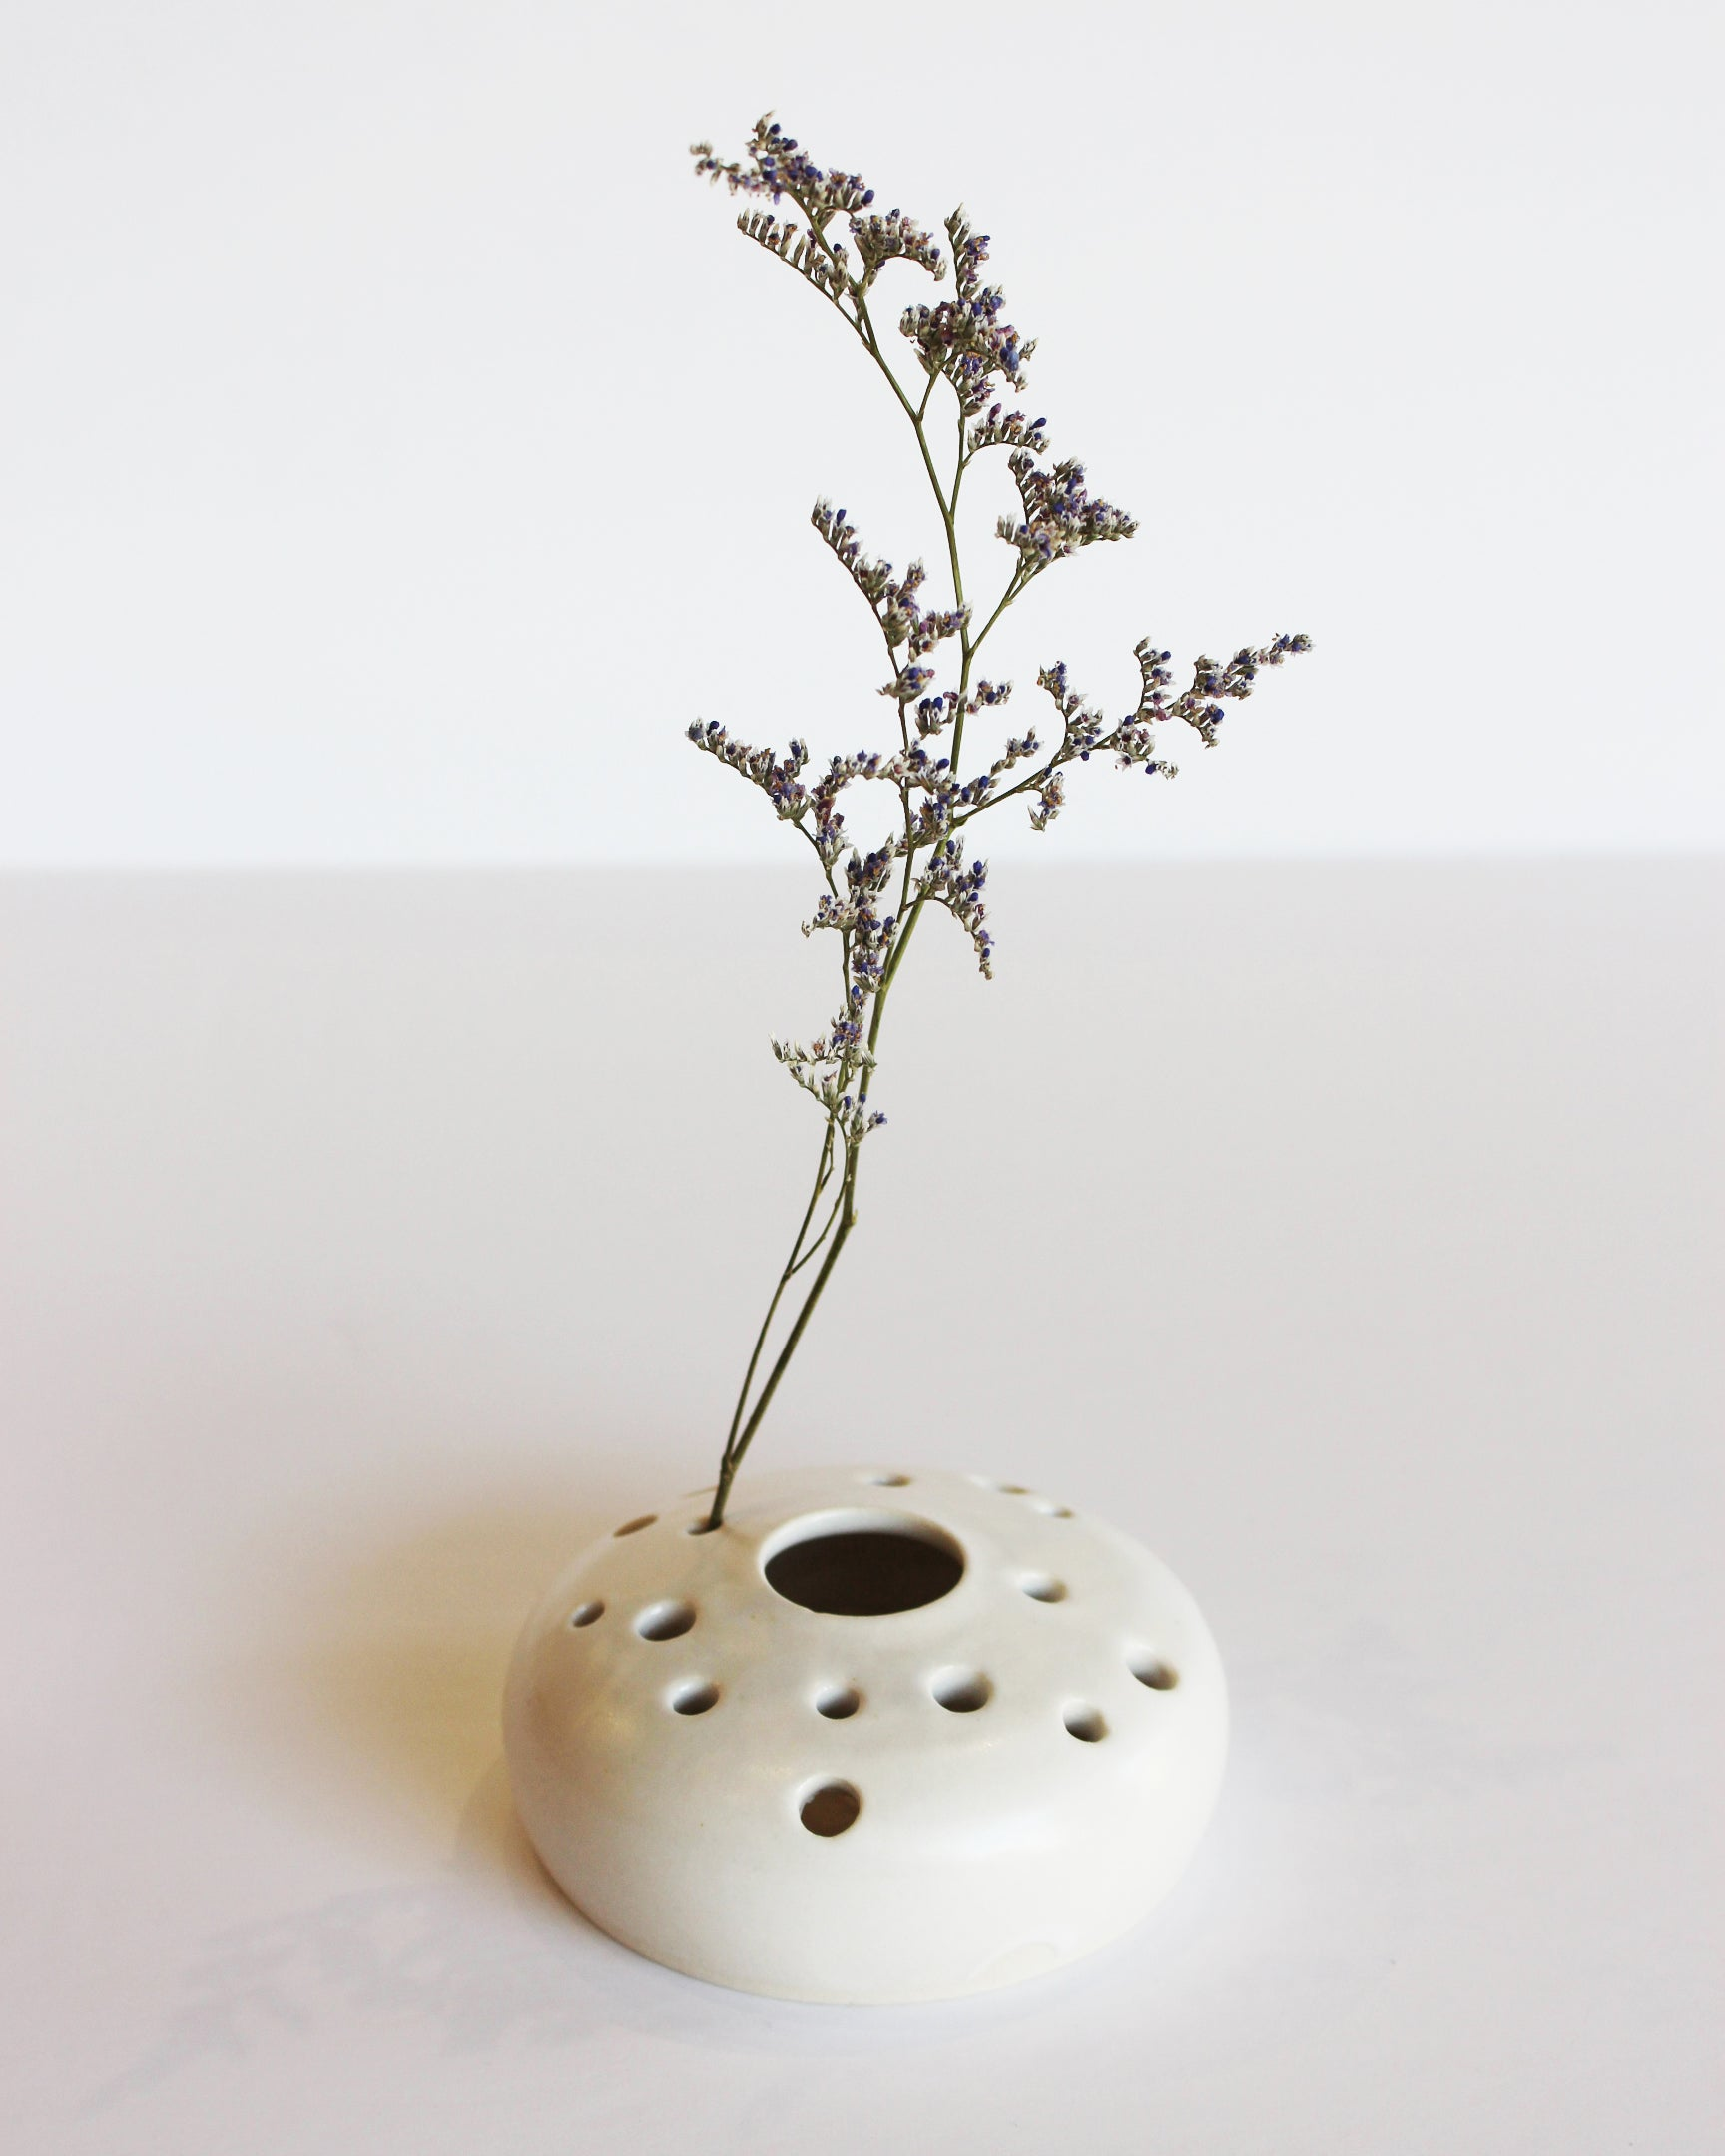 & NOTARY CERAMICS - FLOWER FROG VASE - SATIN WHITE \u2013 esby apparel